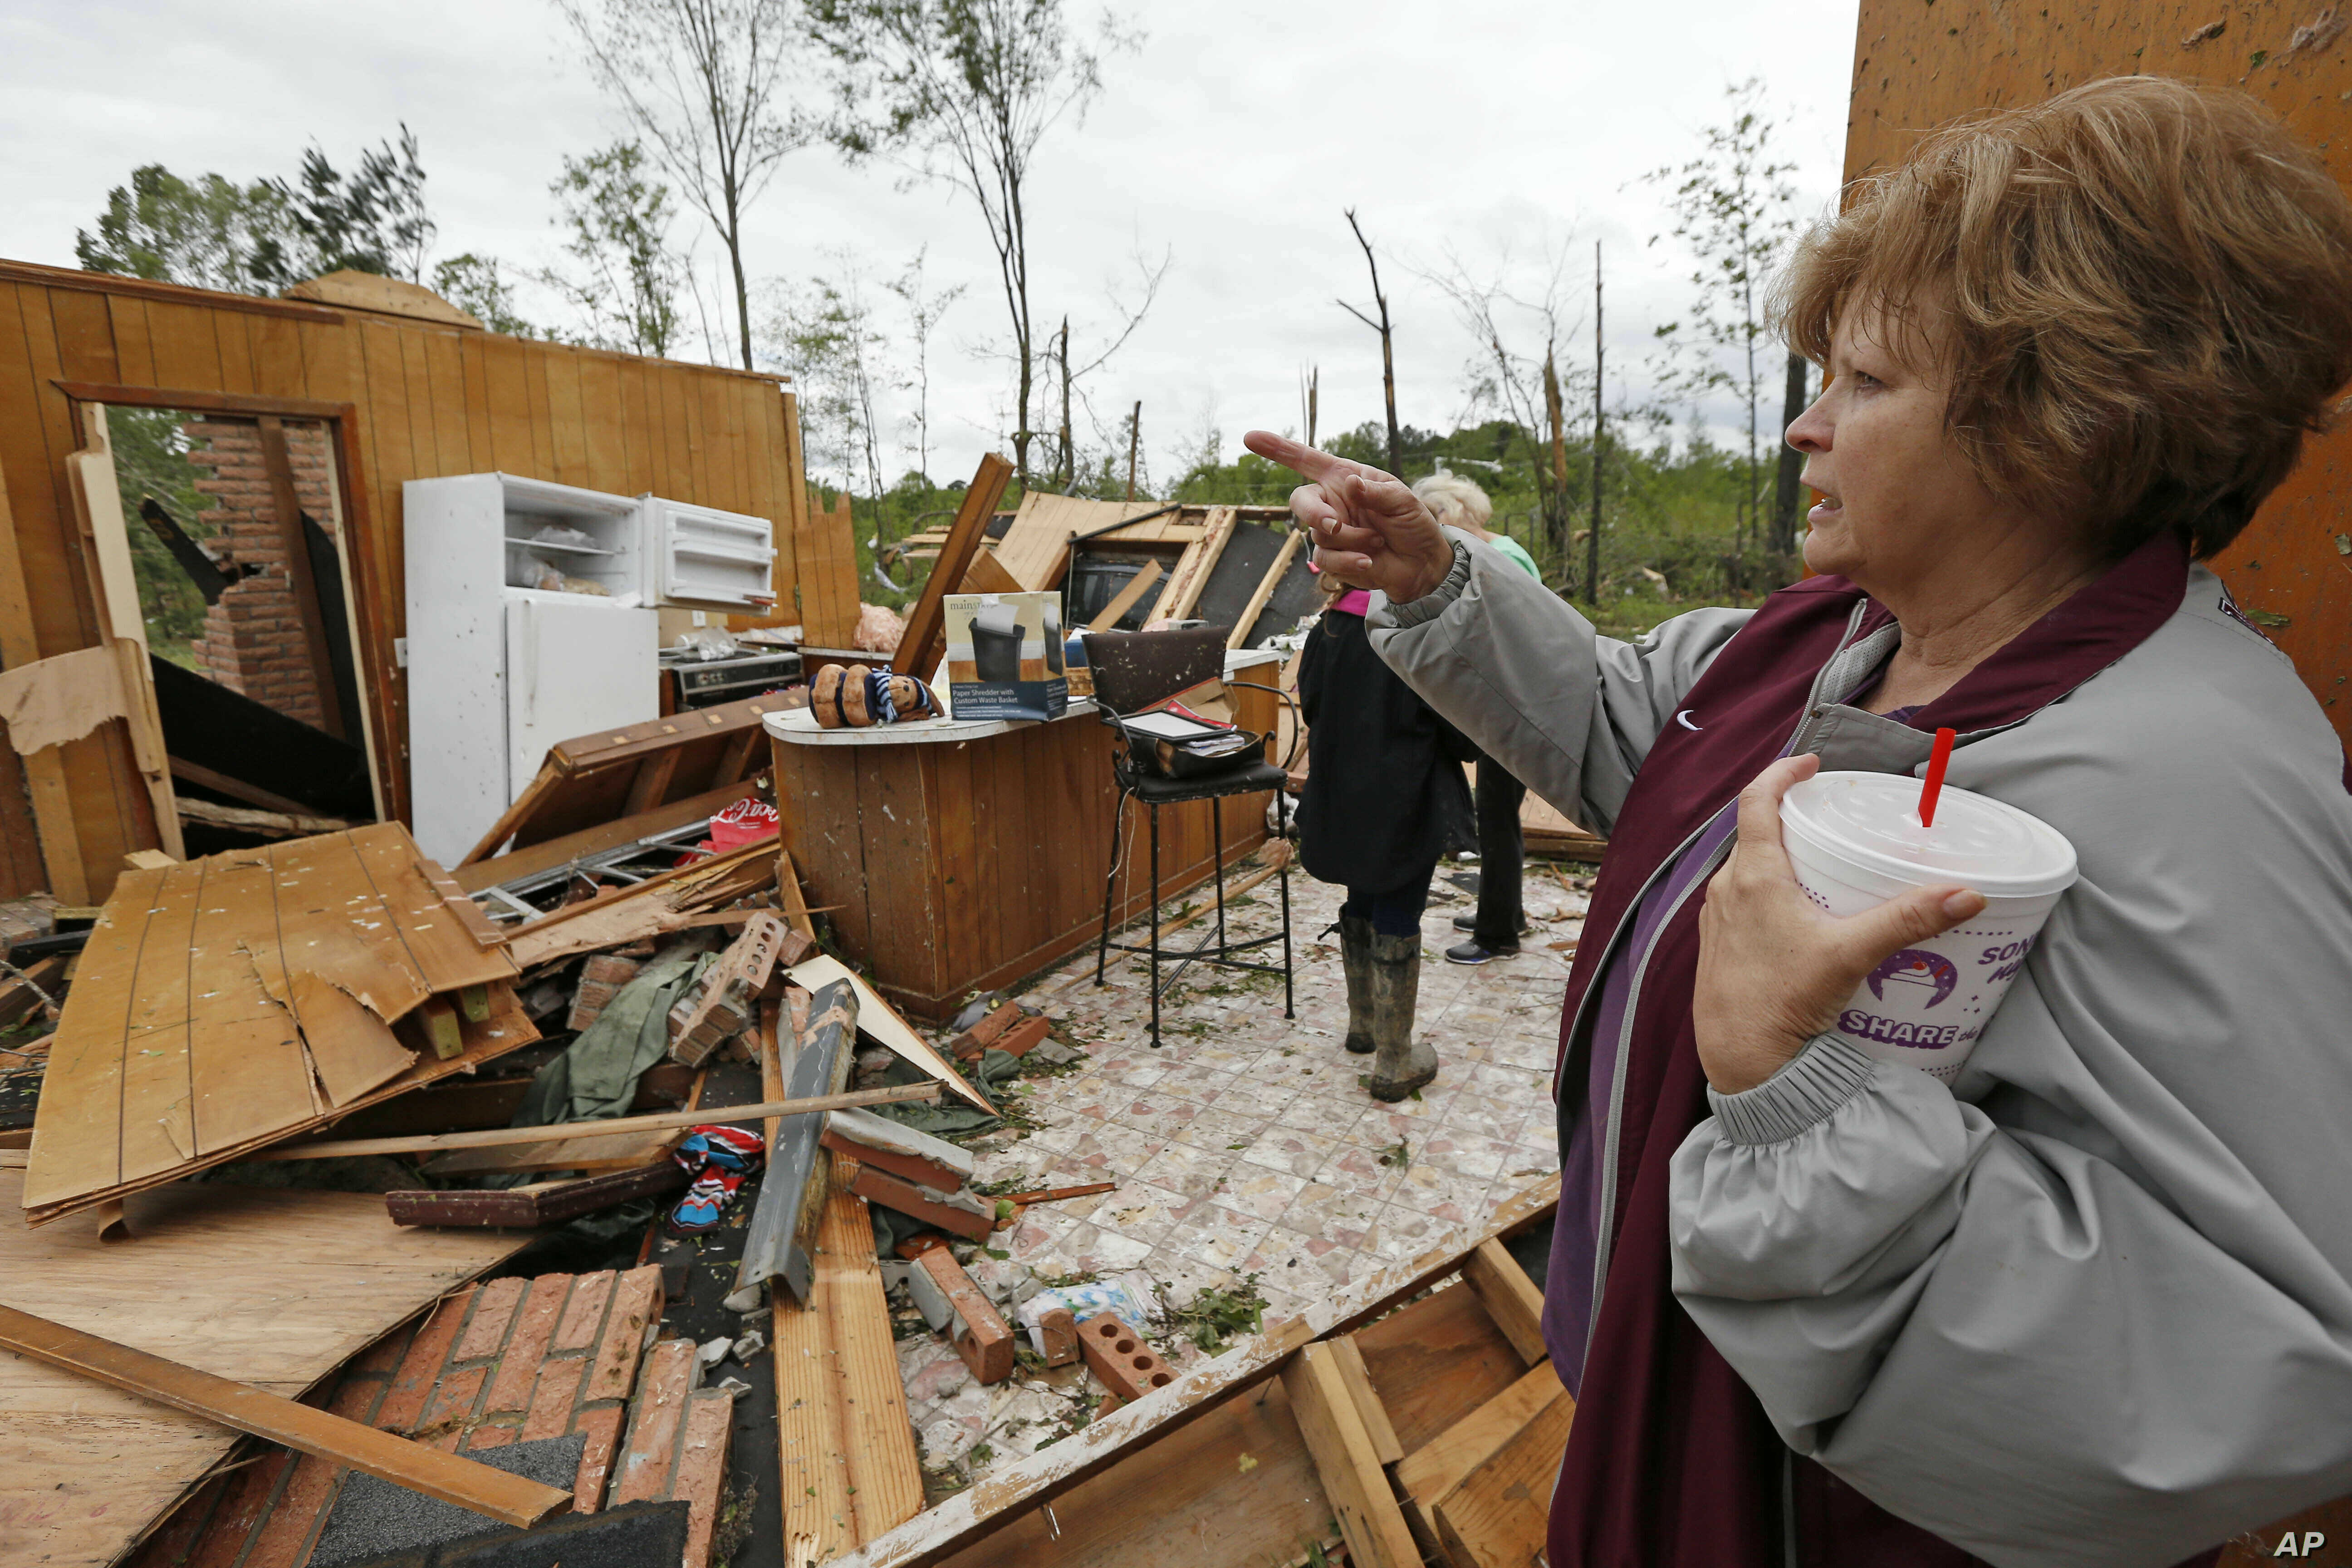 Freda Jenkins looks around the remains of a friend's damaged home, possibly by a tornado, April 19, 2019, in Morton, Miss.